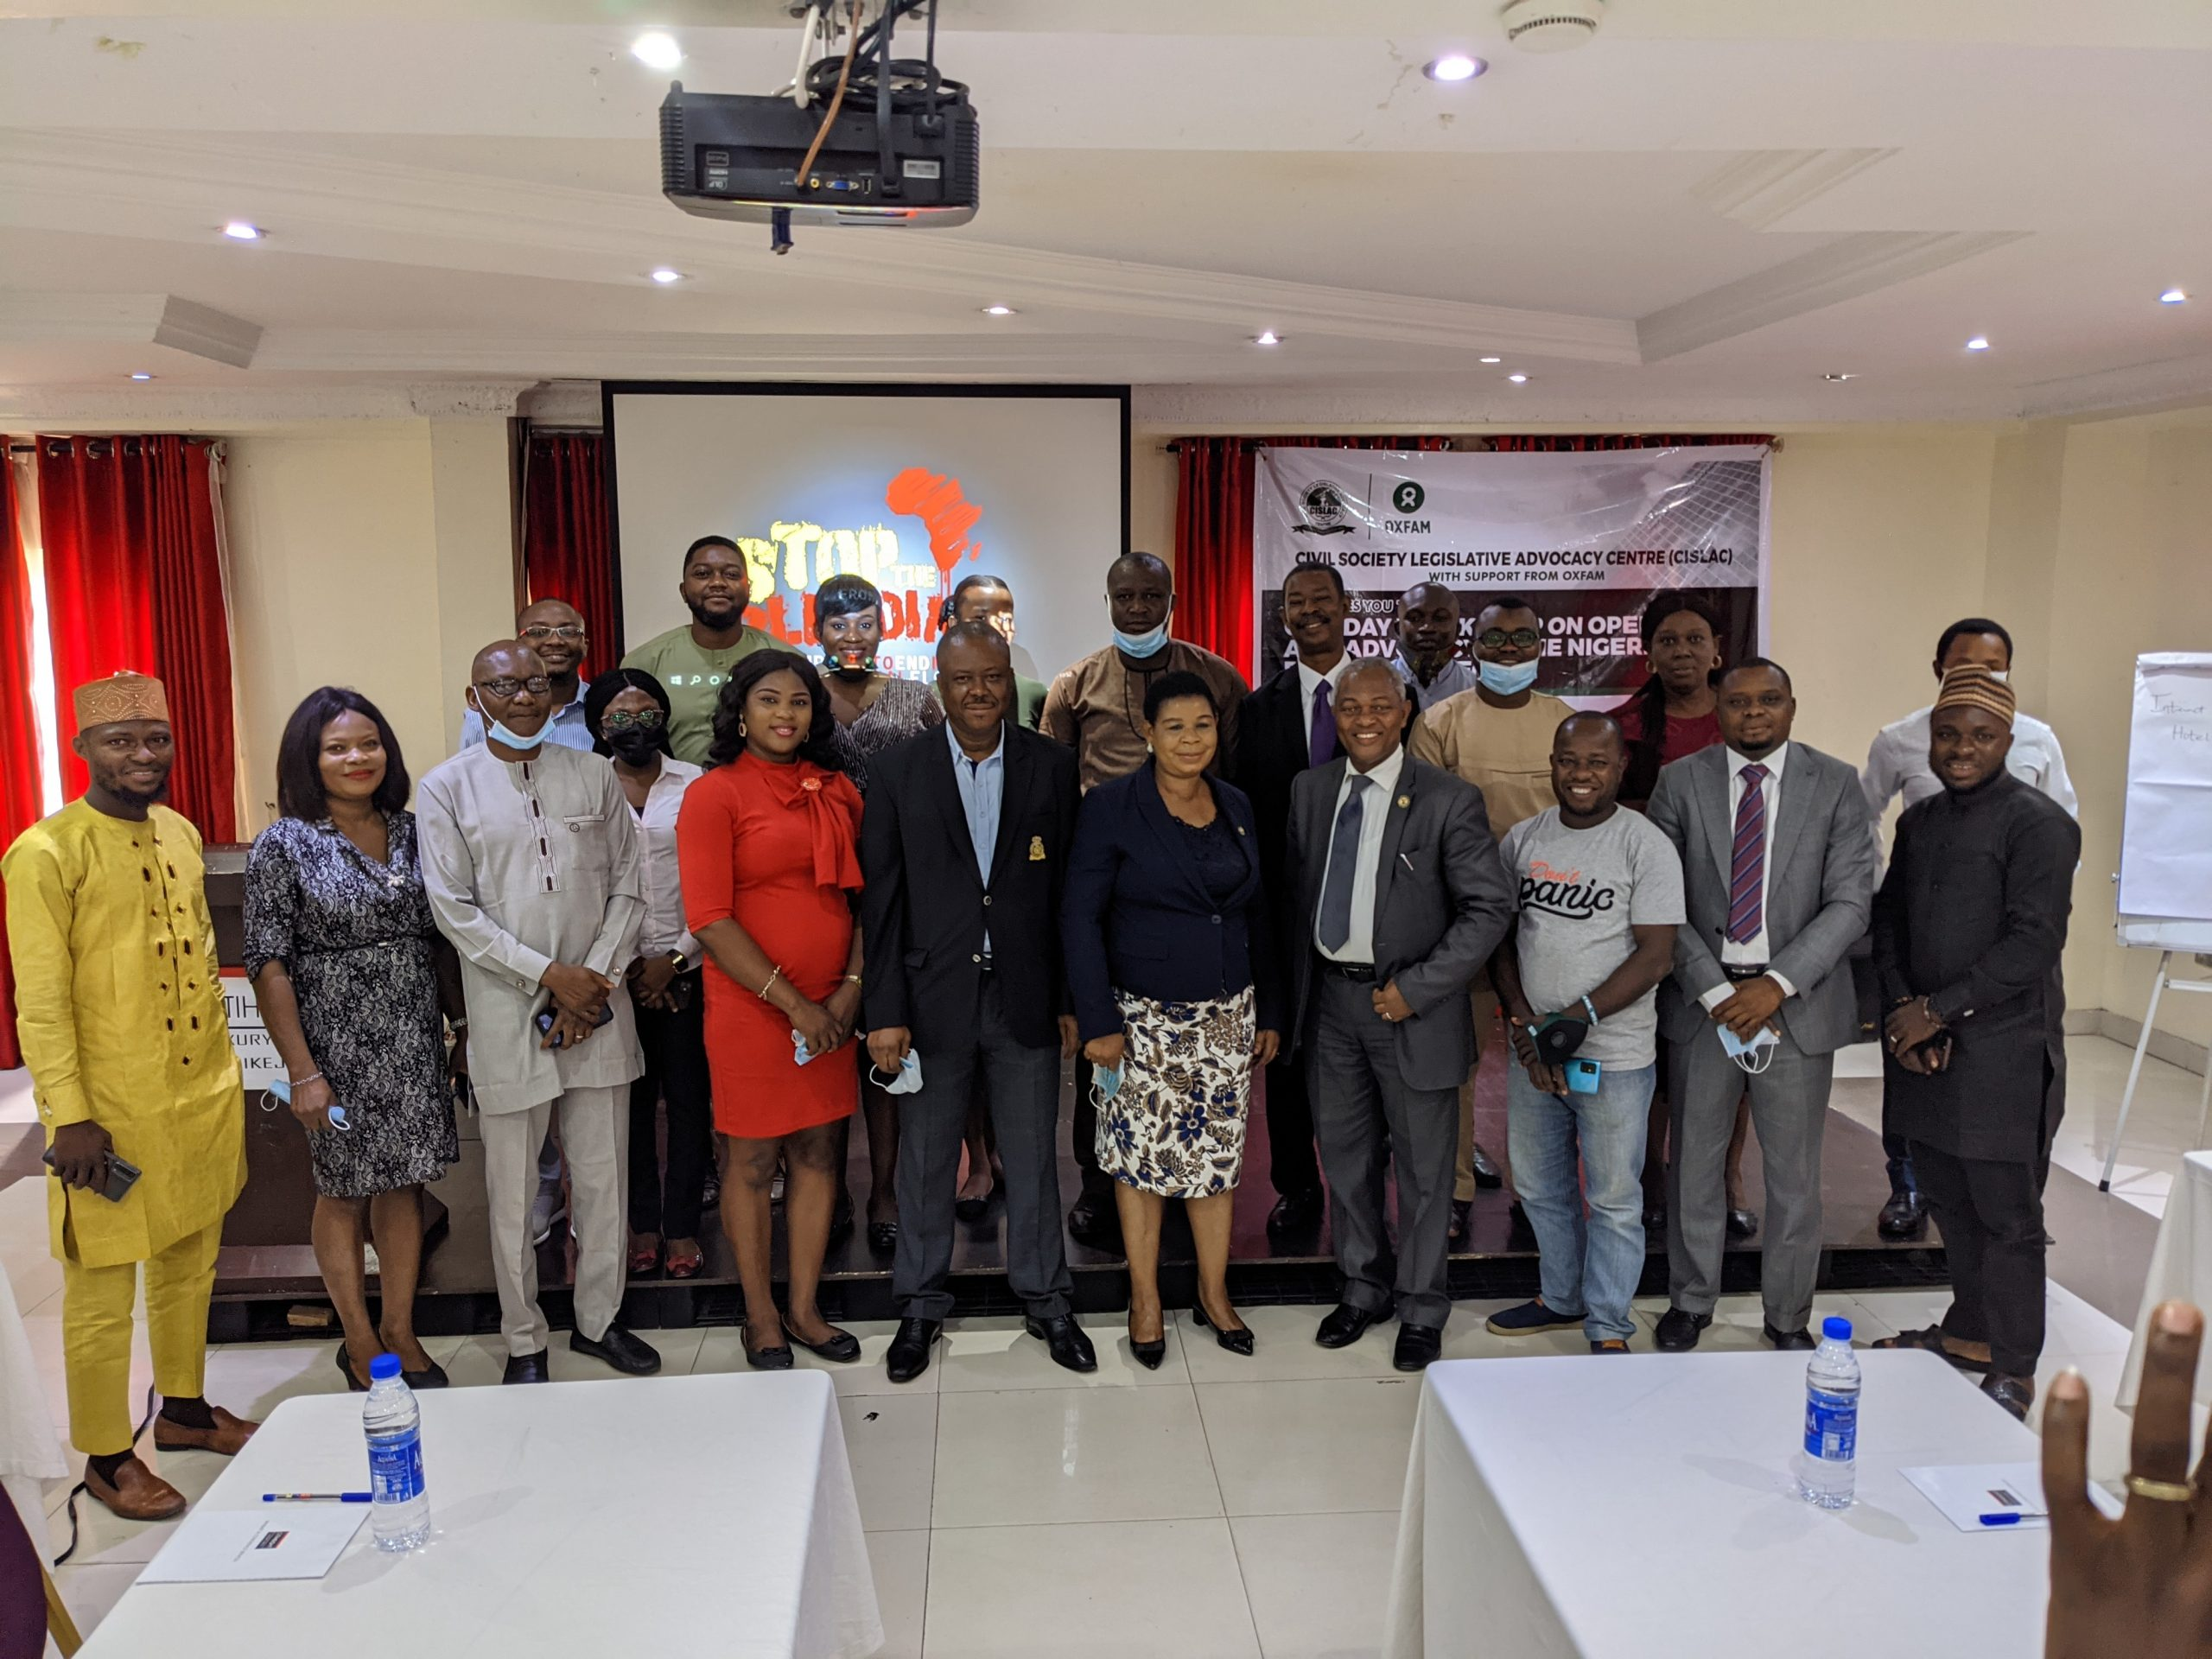 Stakeholders and CSOs at a multi-stakeholder workshop on Open Data organized by CISLAC